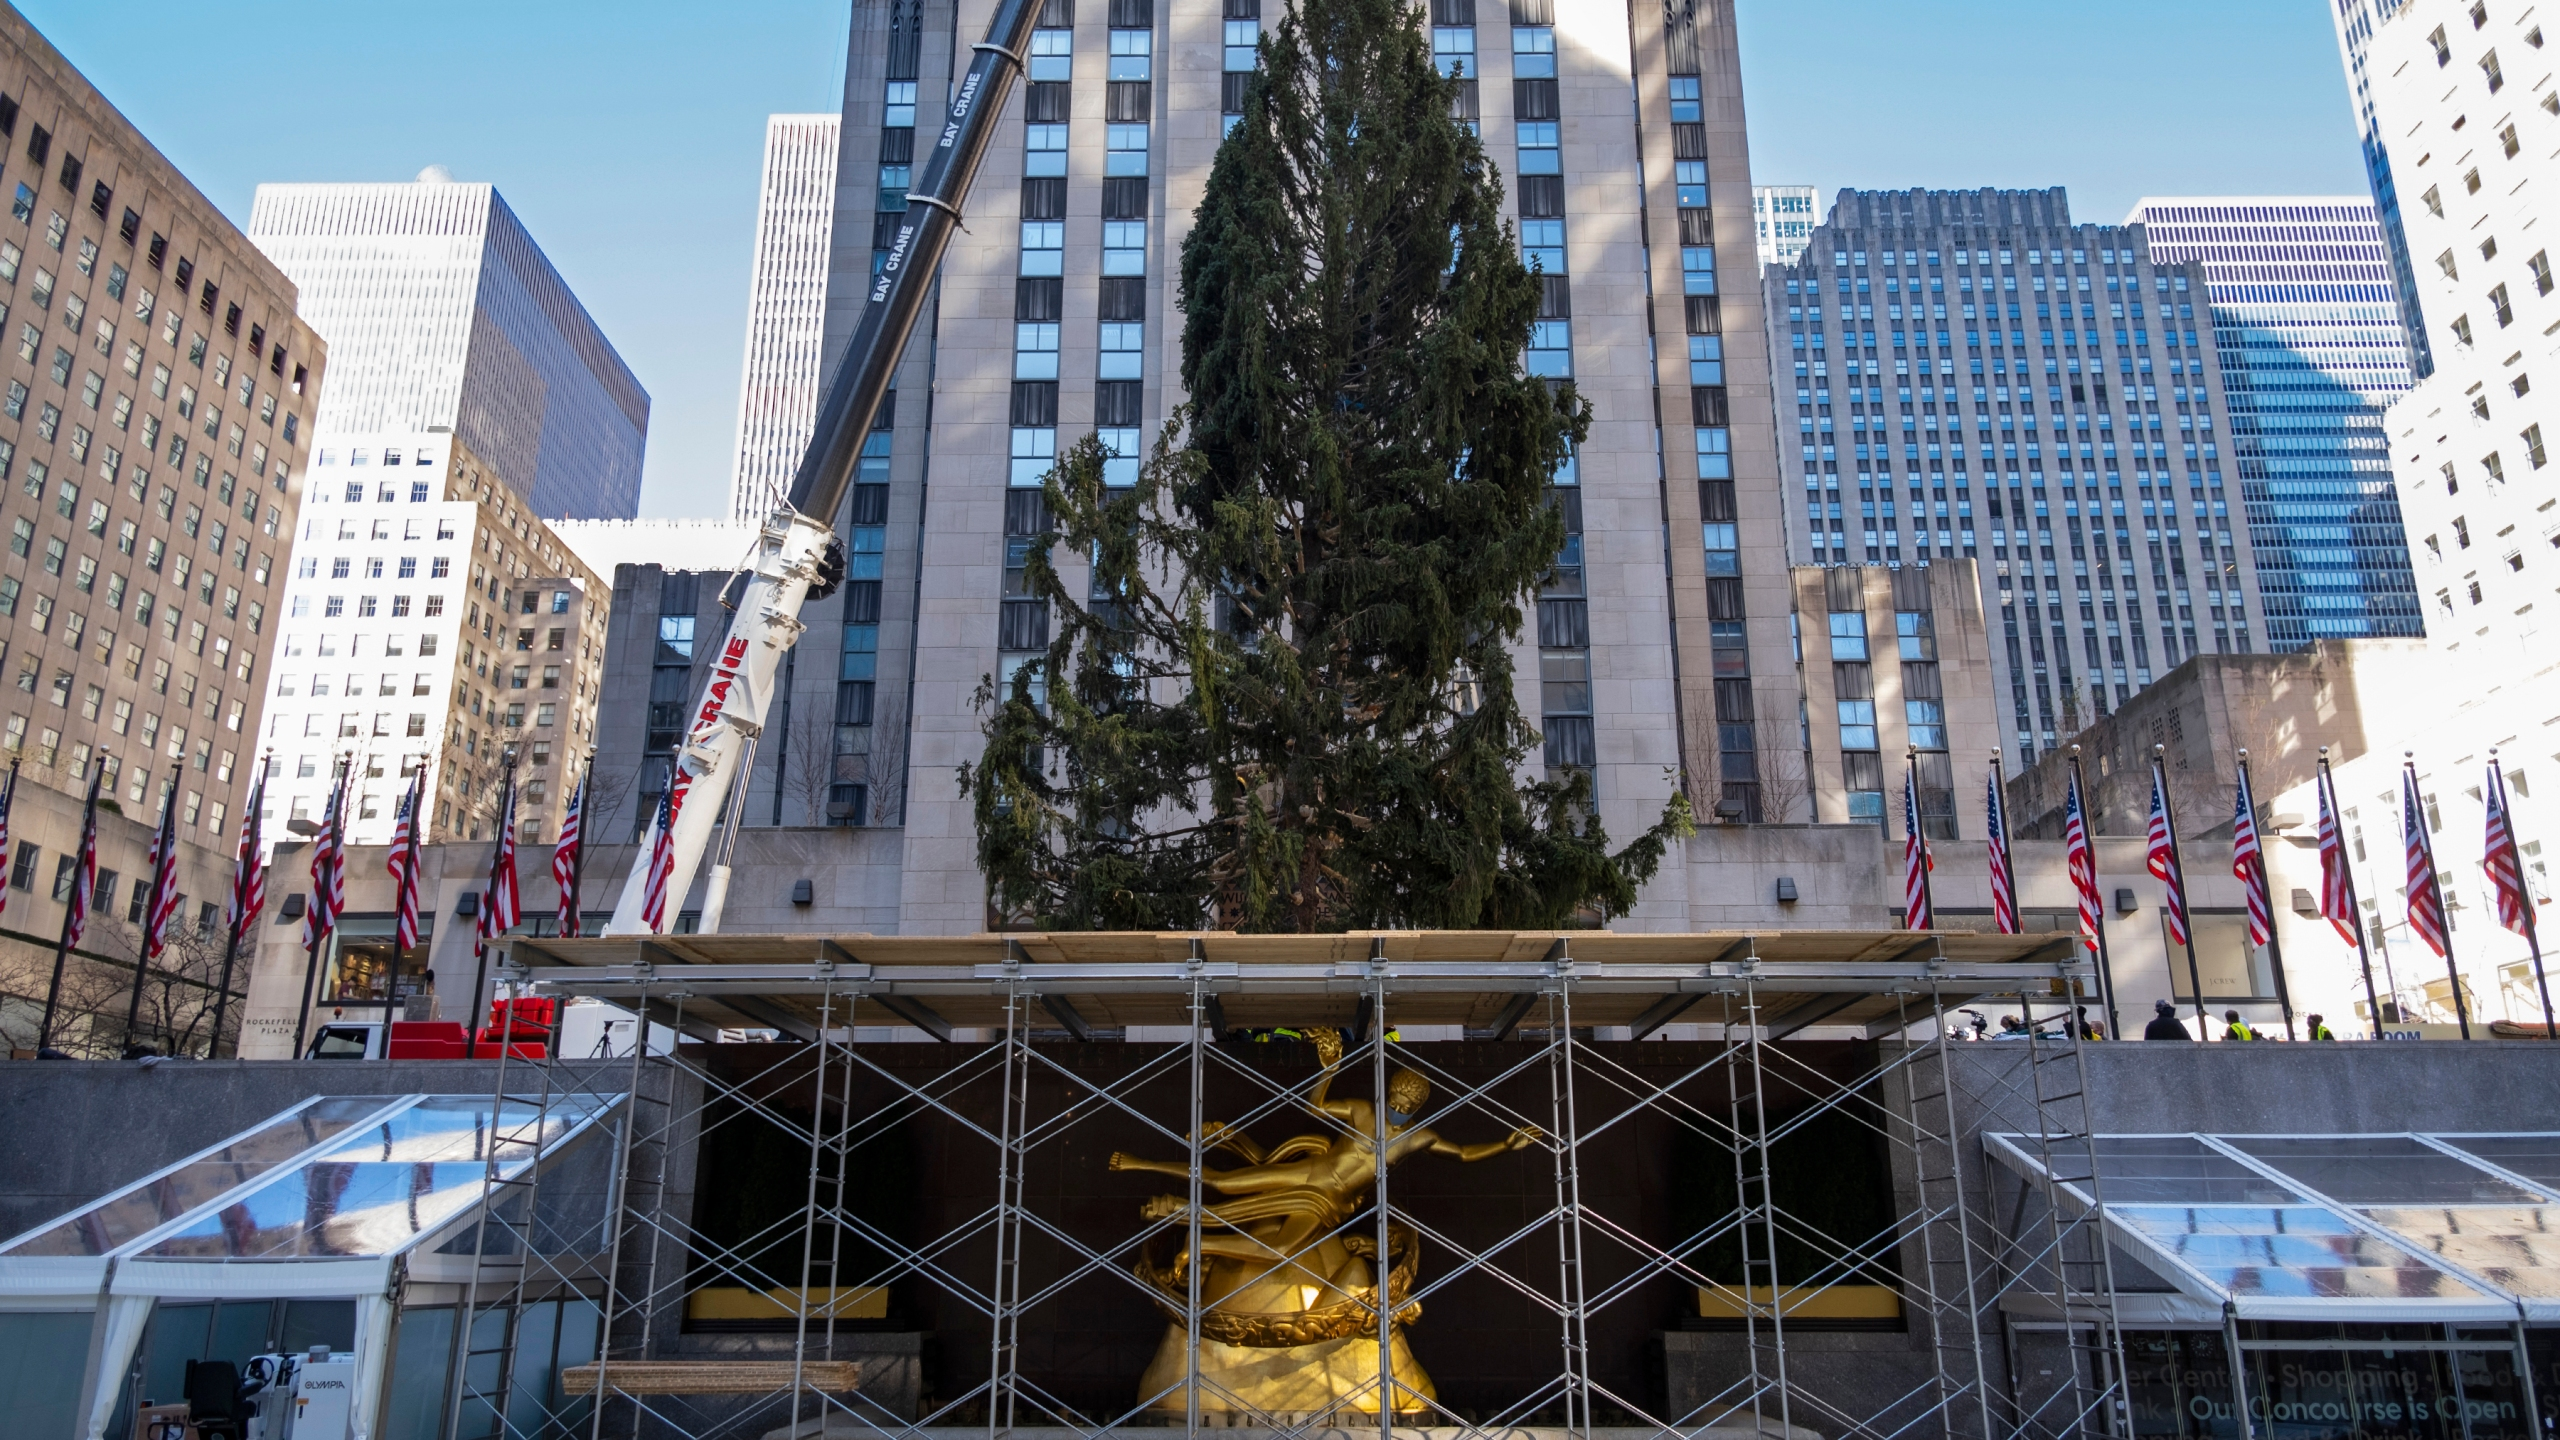 Christmas Programs In The Chicago Suburbs For 2020 Rockefeller Center Christmas tree goes up; lighting Dec. 2 | WGN